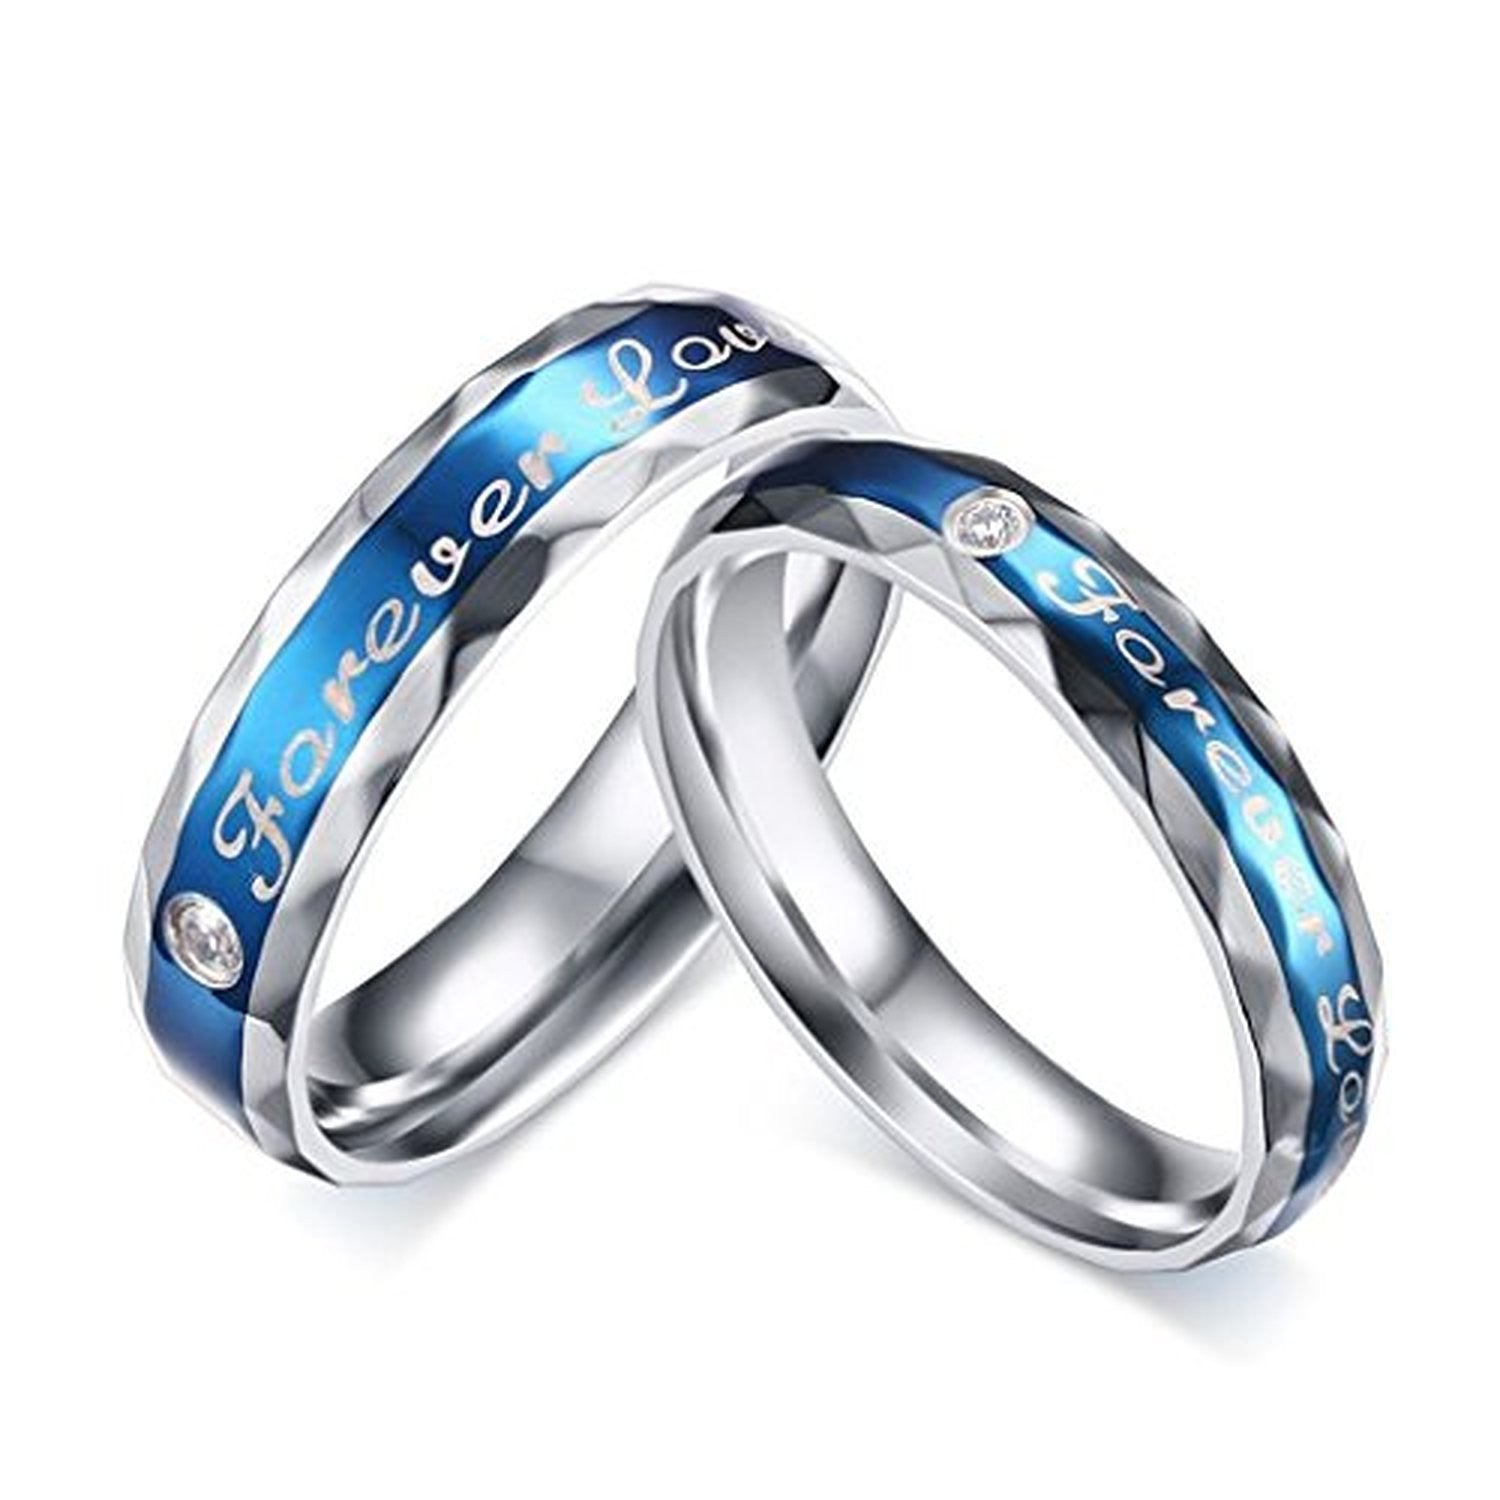 ma obj model rings mb couple stl fbx printable hugging ring cgtrader jewelry models print engagement